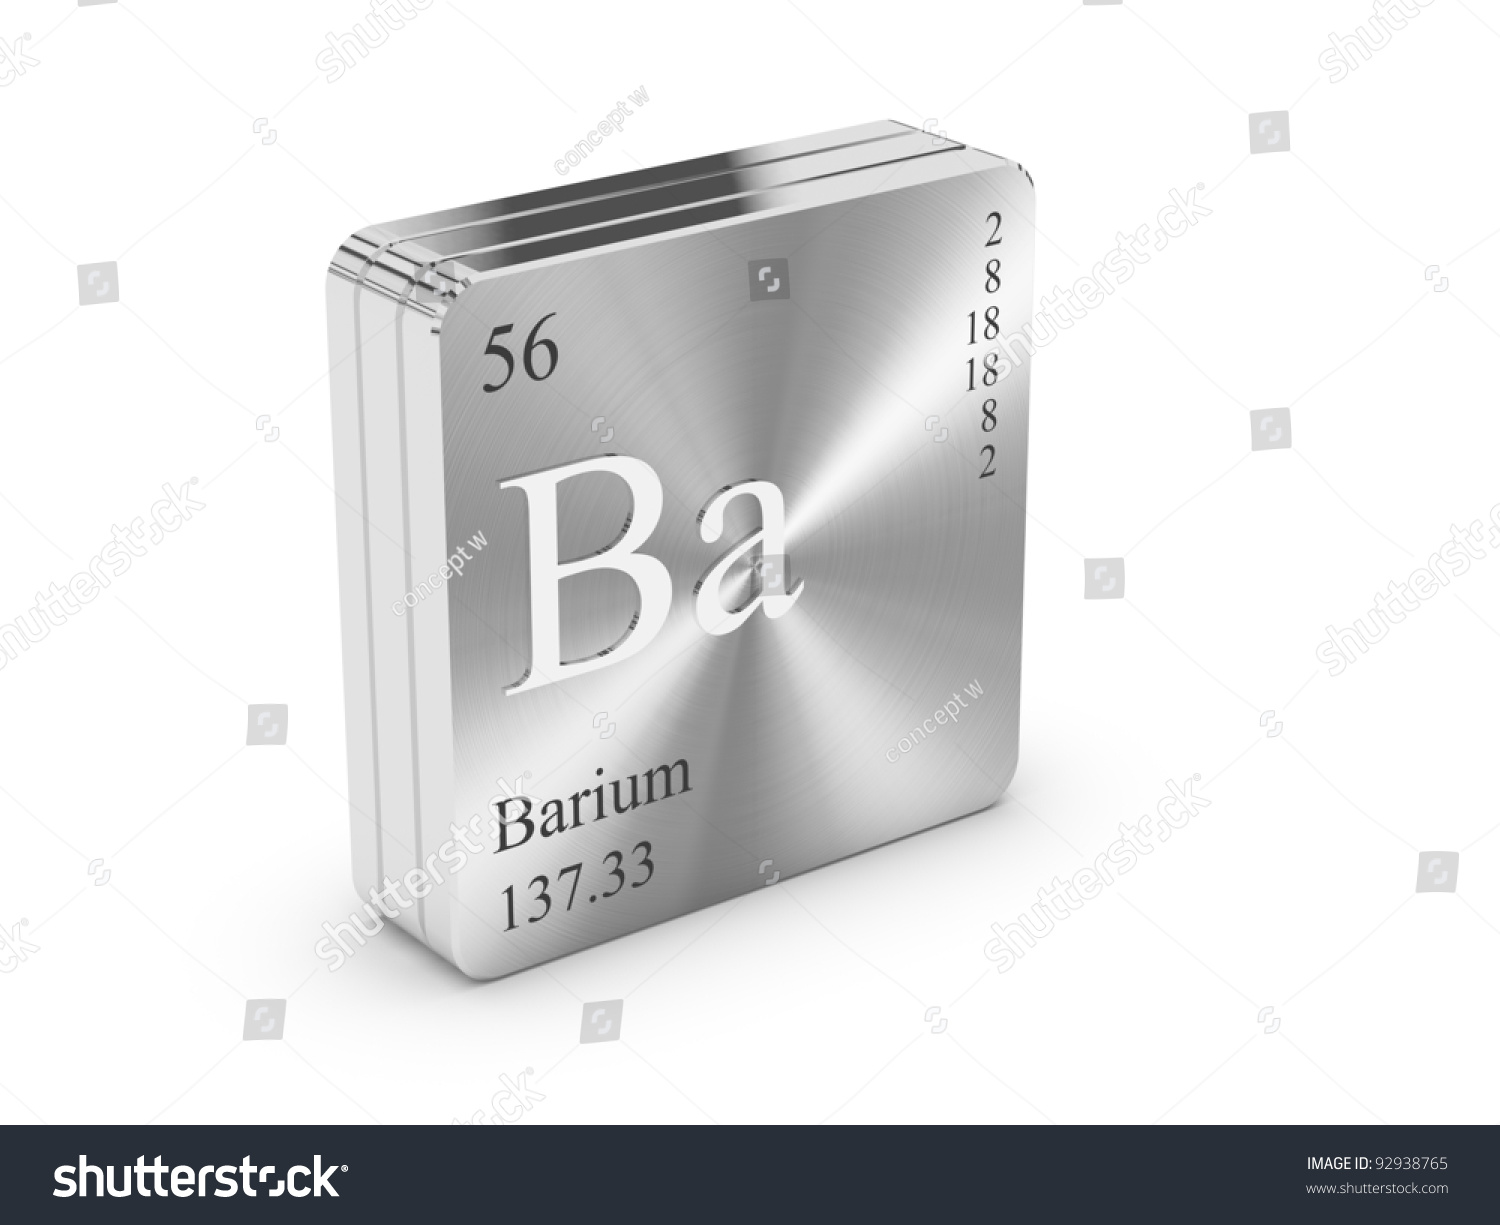 Barium element periodic table on metal stock illustration 92938765 barium element of the periodic table on metal steel block gamestrikefo Gallery